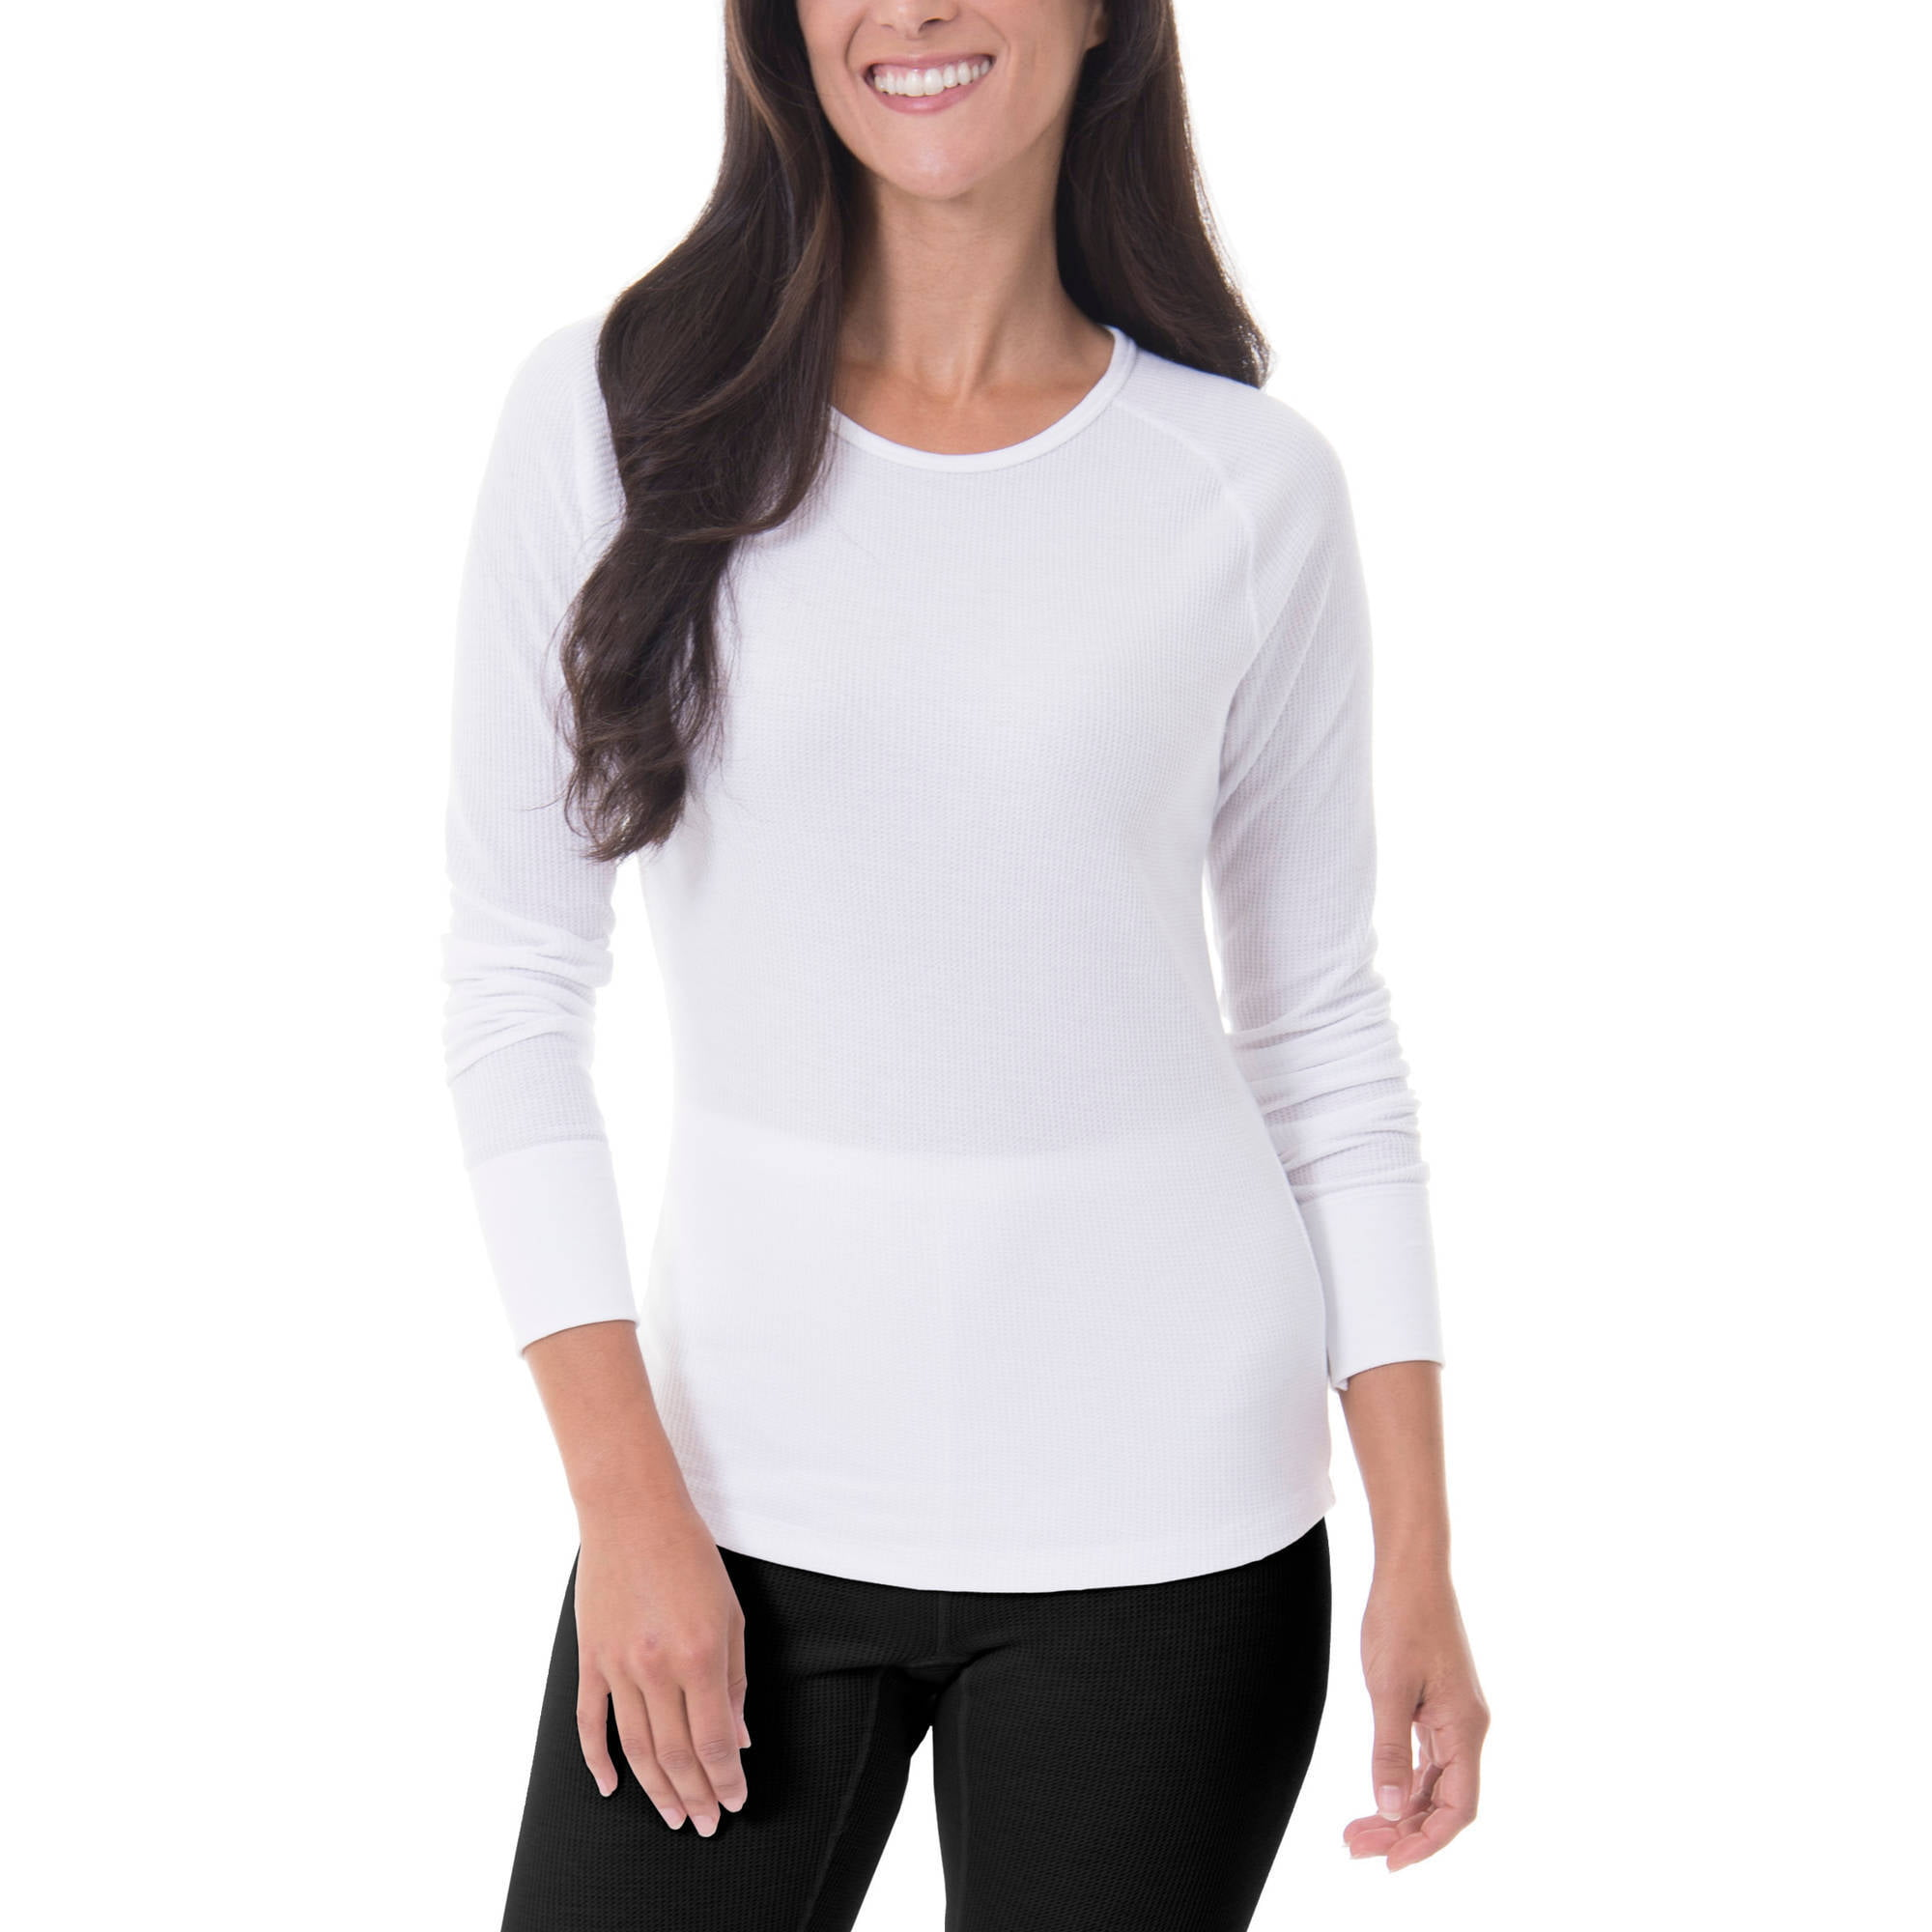 Fruit of the Loom Women's Waffle Thermal Underwear Top by